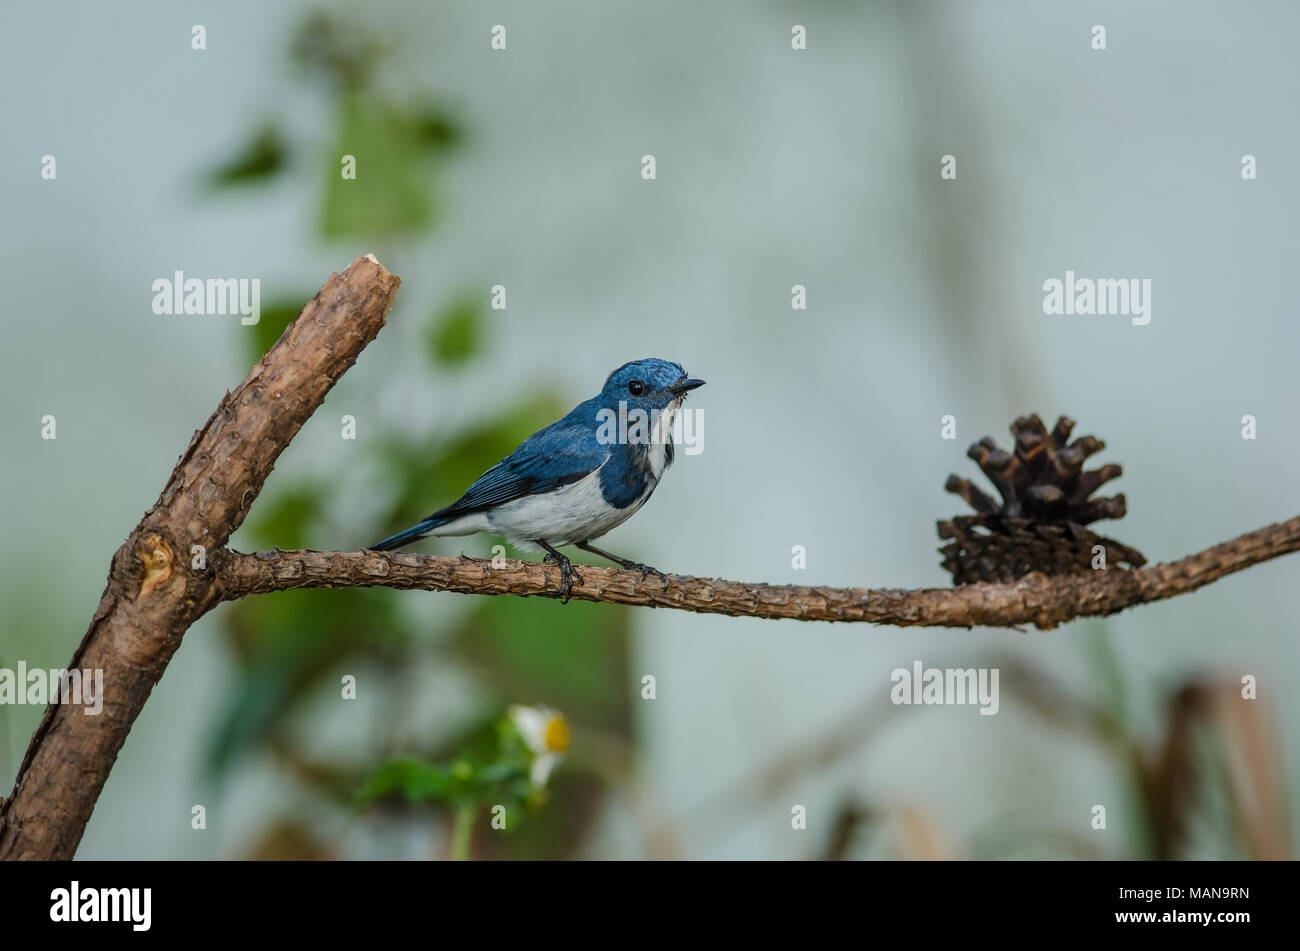 Ultramarine Flycatcher perched on branch in nature Thailand (Ficedula superciliaris) - Stock Image